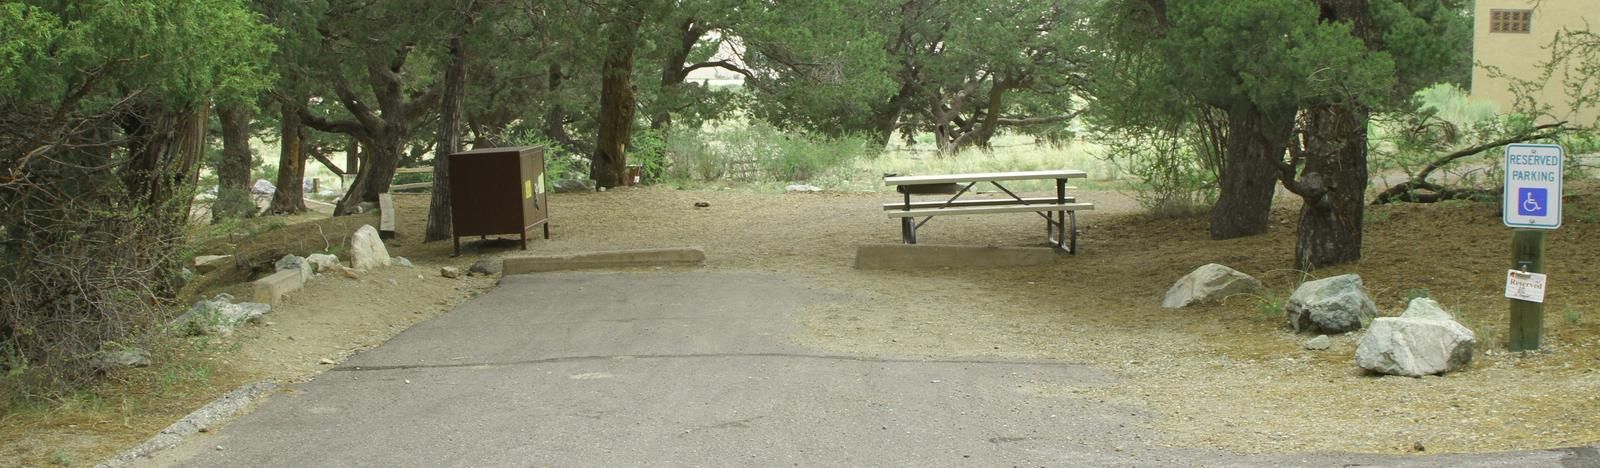 Site 14, Pinon Flats Campground